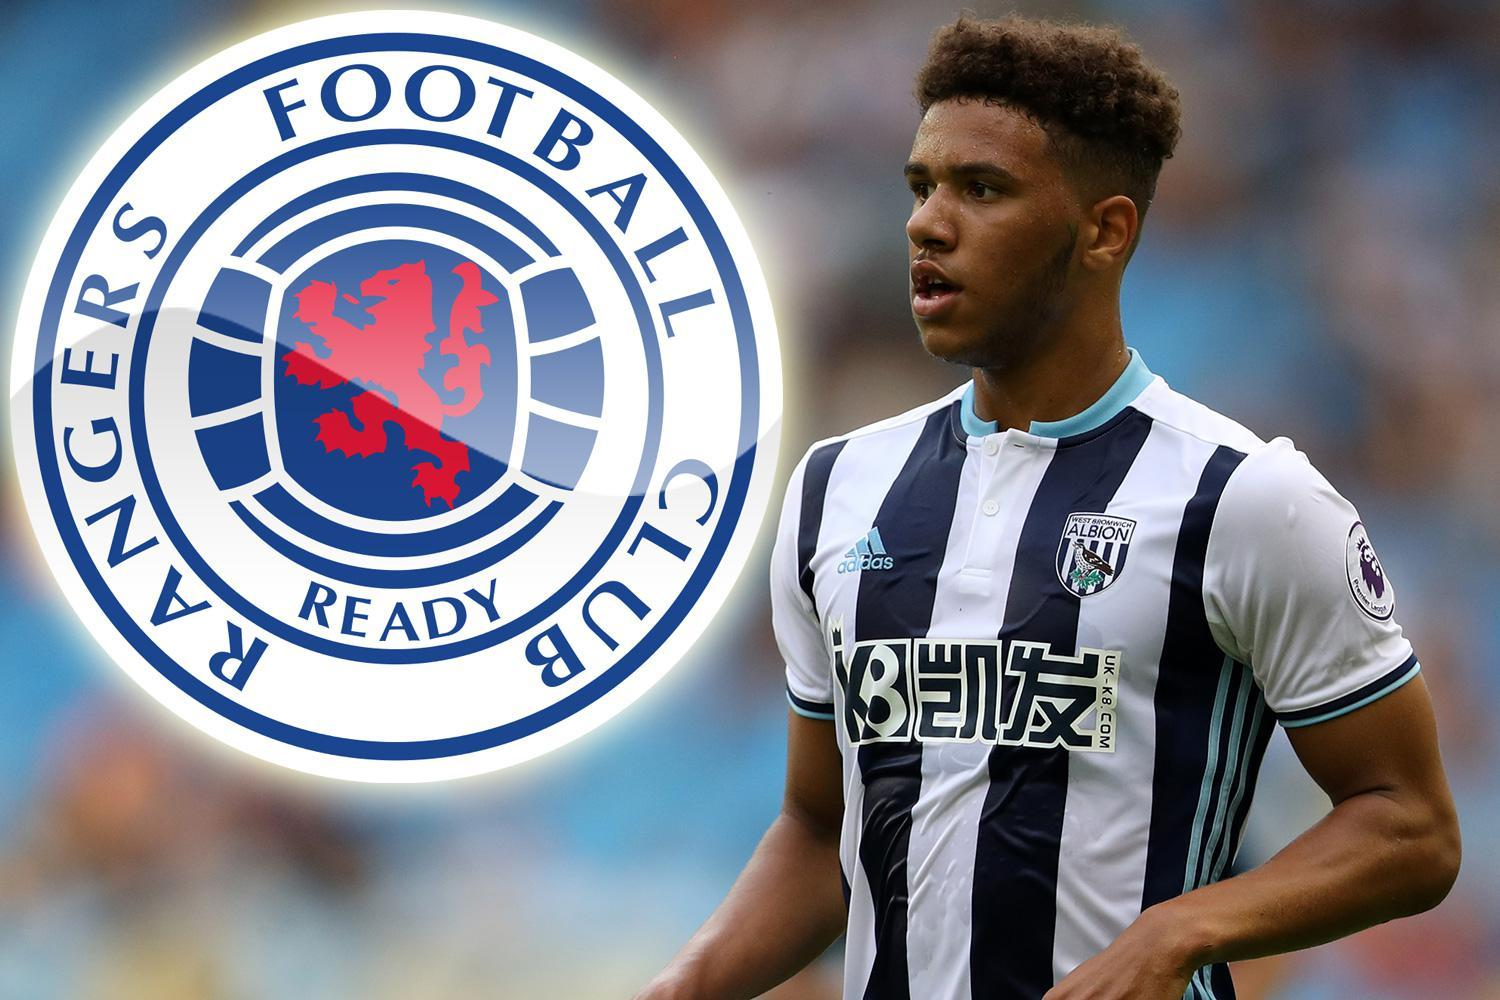 West Brom striker Tyler Roberts is close to agreeing a cut-price summer move to Rangers